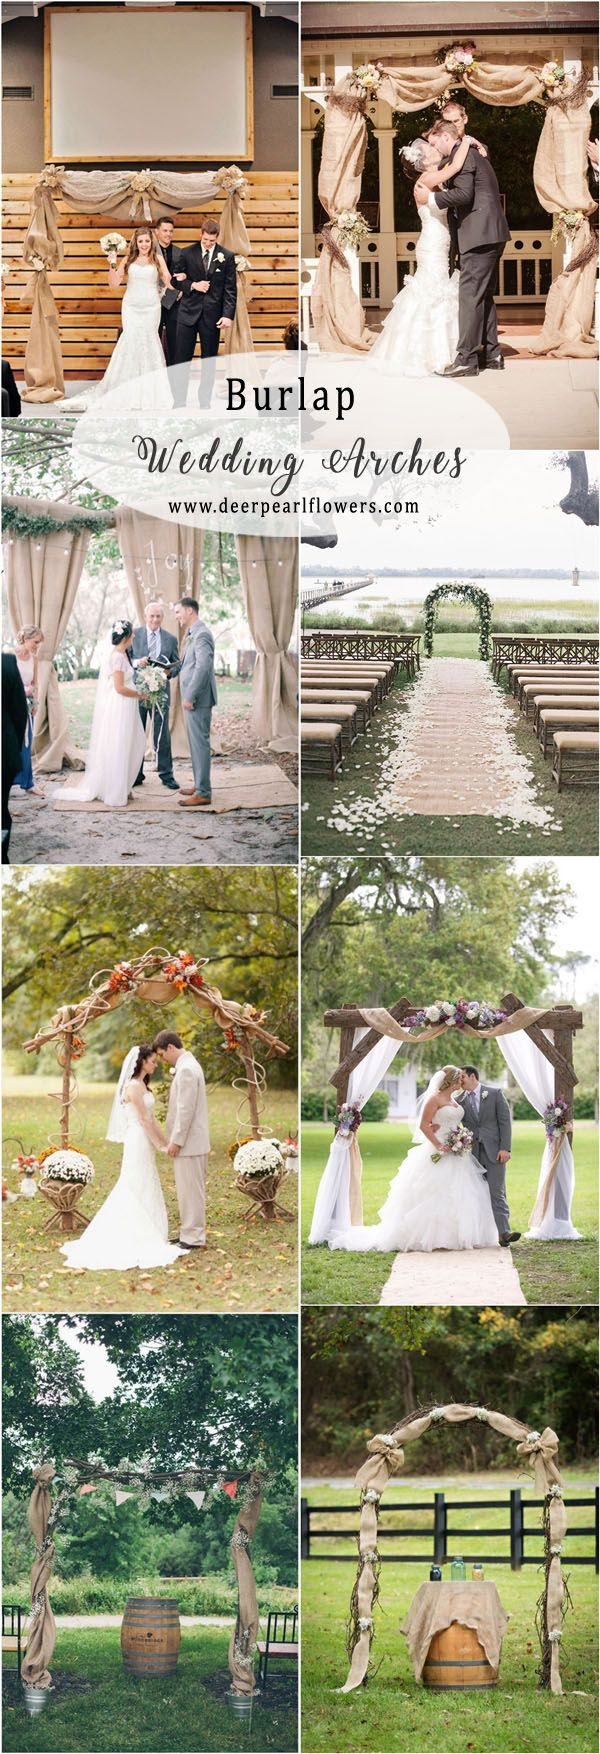 Wedding decoration ideas rustic   Rustic Country Burlap Wedding Decor Ideas  Rustic Wedding Ideas